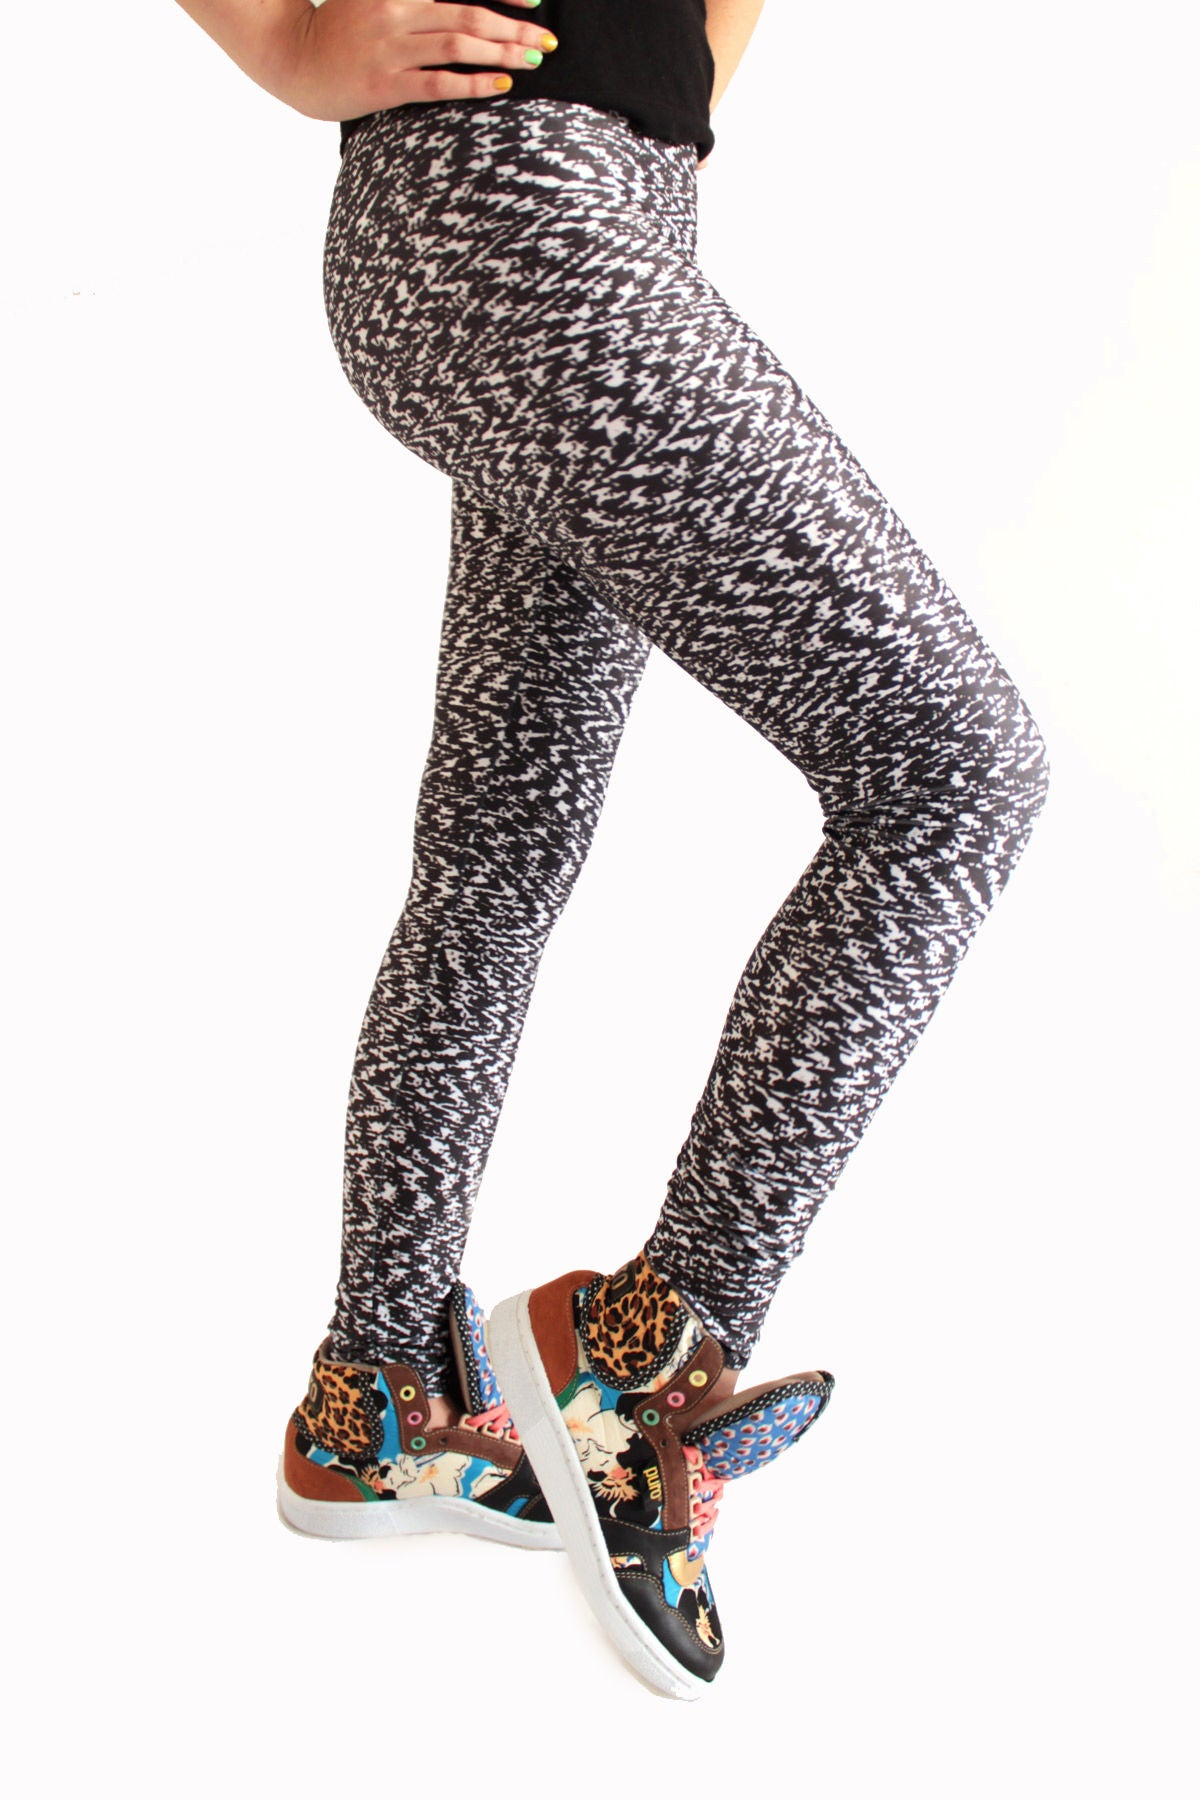 Ziggynoise Leggings | Ziggynoise Leggings-Leggings-Eat me!